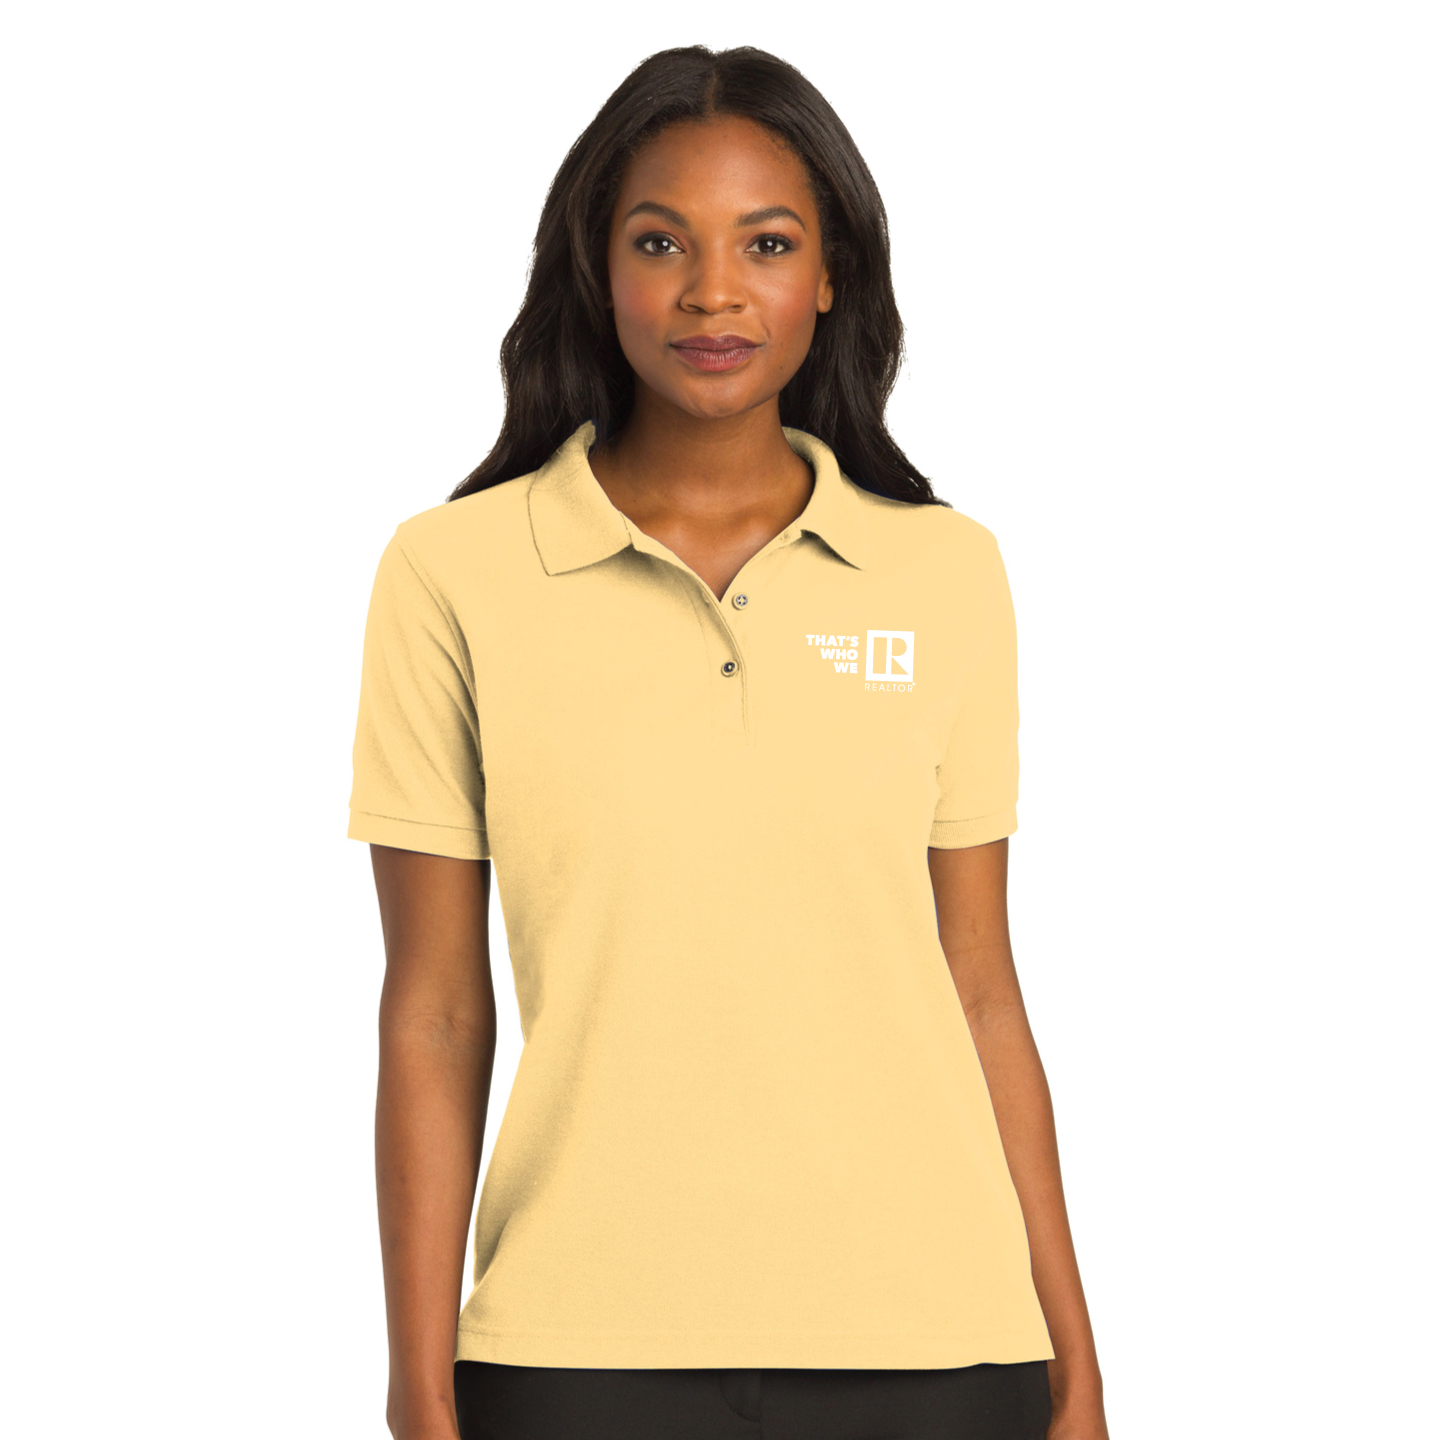 """That's Who We R"" Ladies Pique Polo Shirt twwr,ThatsWhoWeR,That's,TWWR,ThatWho,That'sWho,Twwr,Thats,Whos,We,Ares,Twwr,Thats,Whos,We,Area,Golfs, Shirts, Collared, Polos, Plackets"